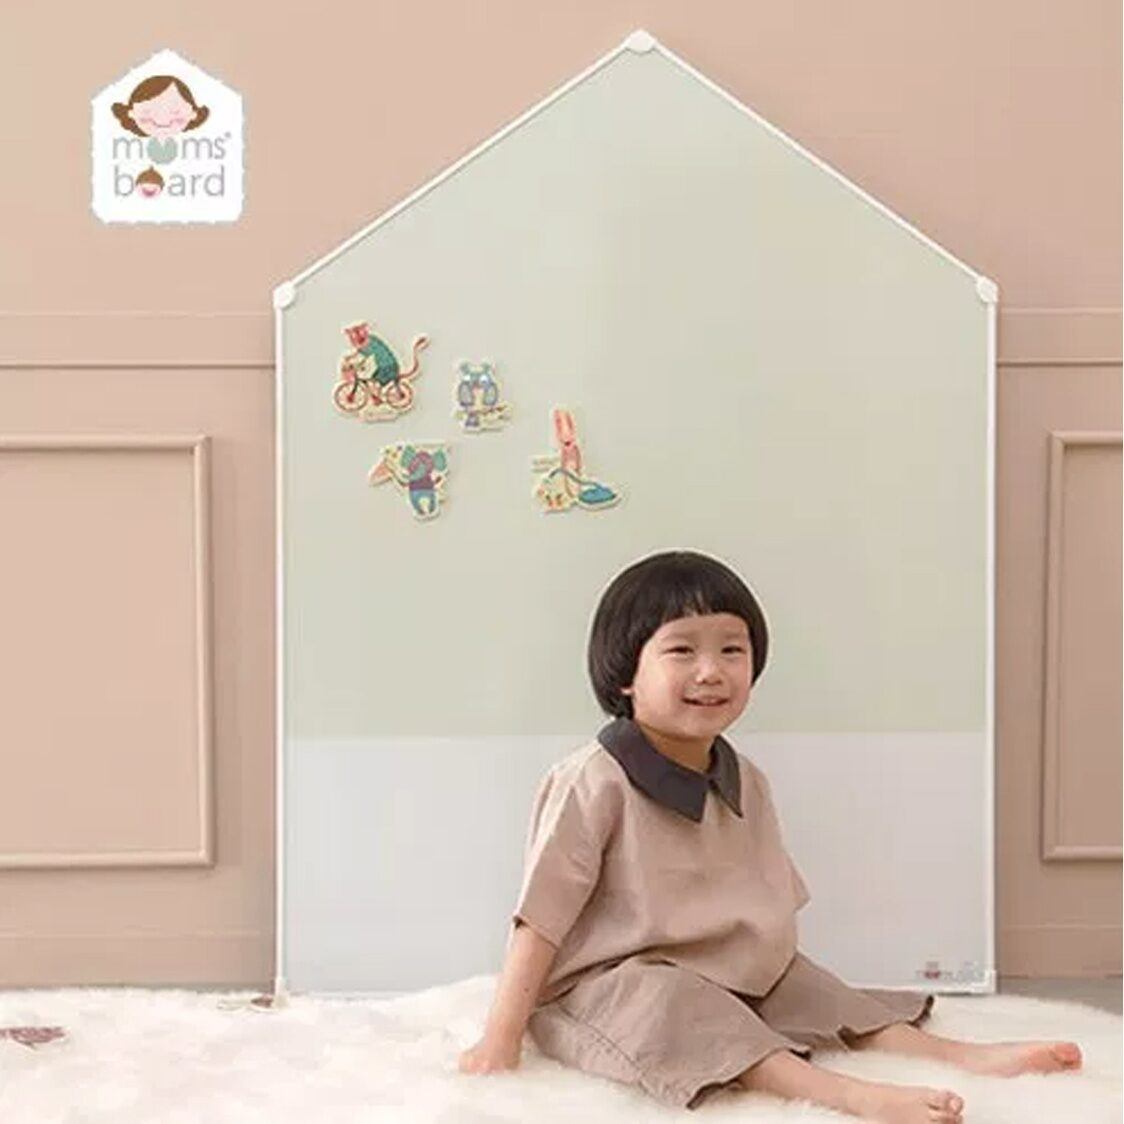 Premium Magnetic Board - Jeje House AddM - Green